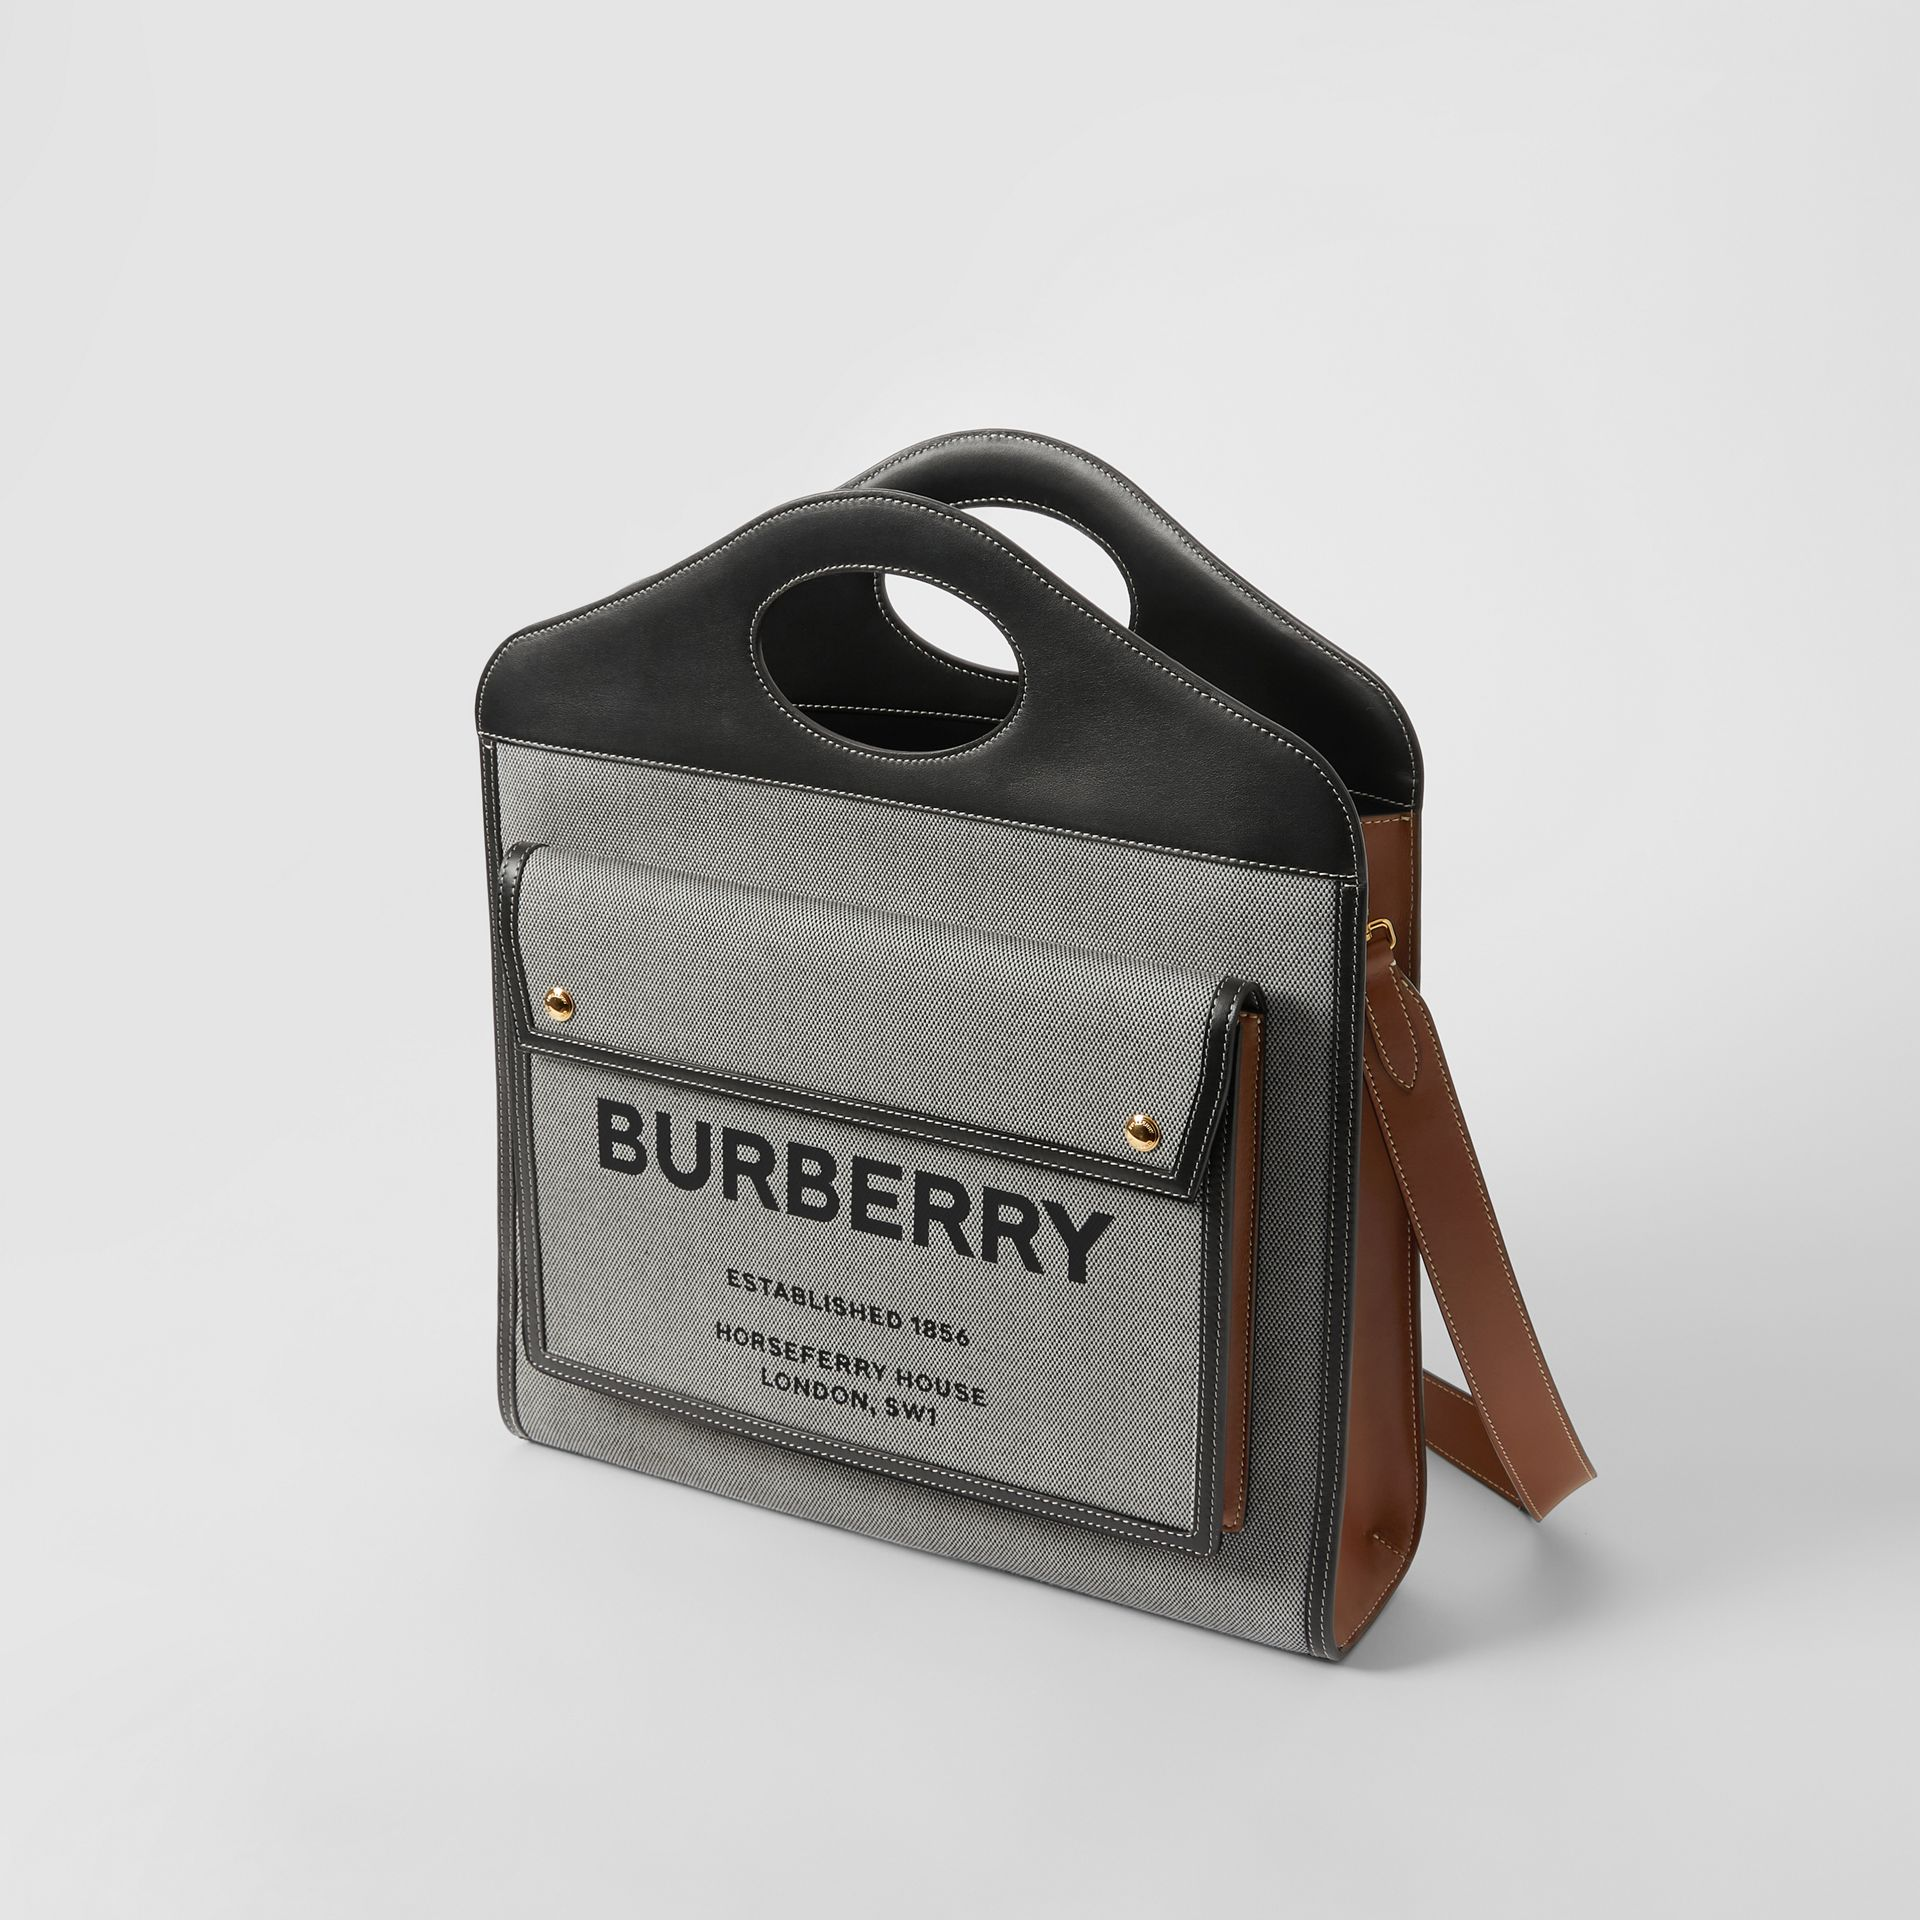 Mini Tri-tone Canvas and Leather Pocket Bag in Black/tan - Women | Burberry - gallery image 3